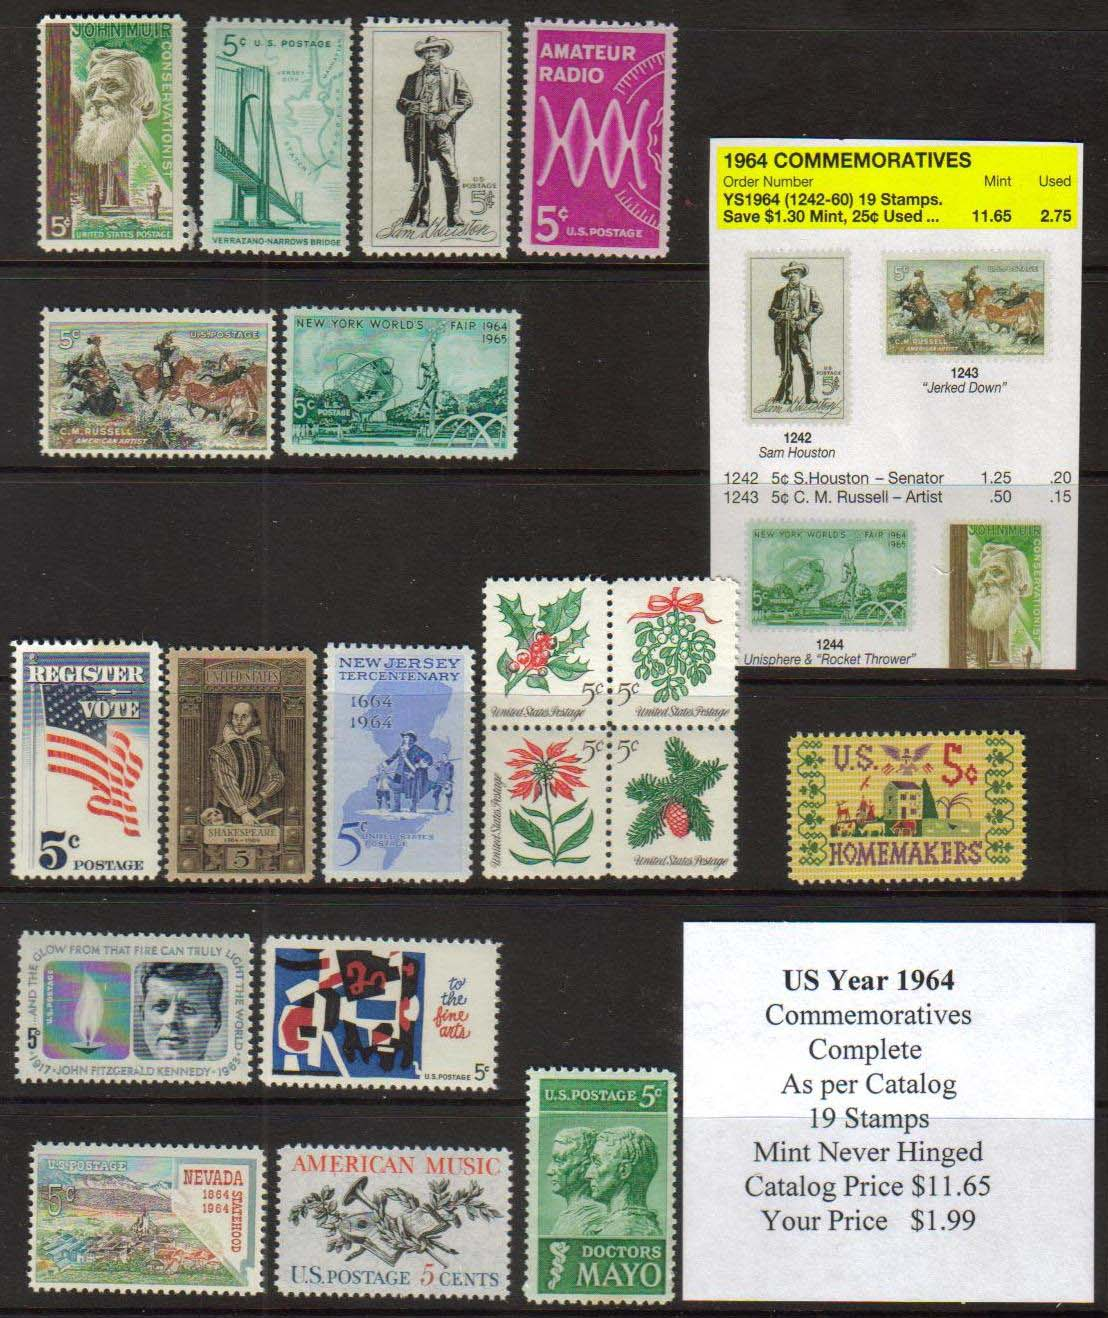 1964 COMMEMORATIVES, 19 STAMPS